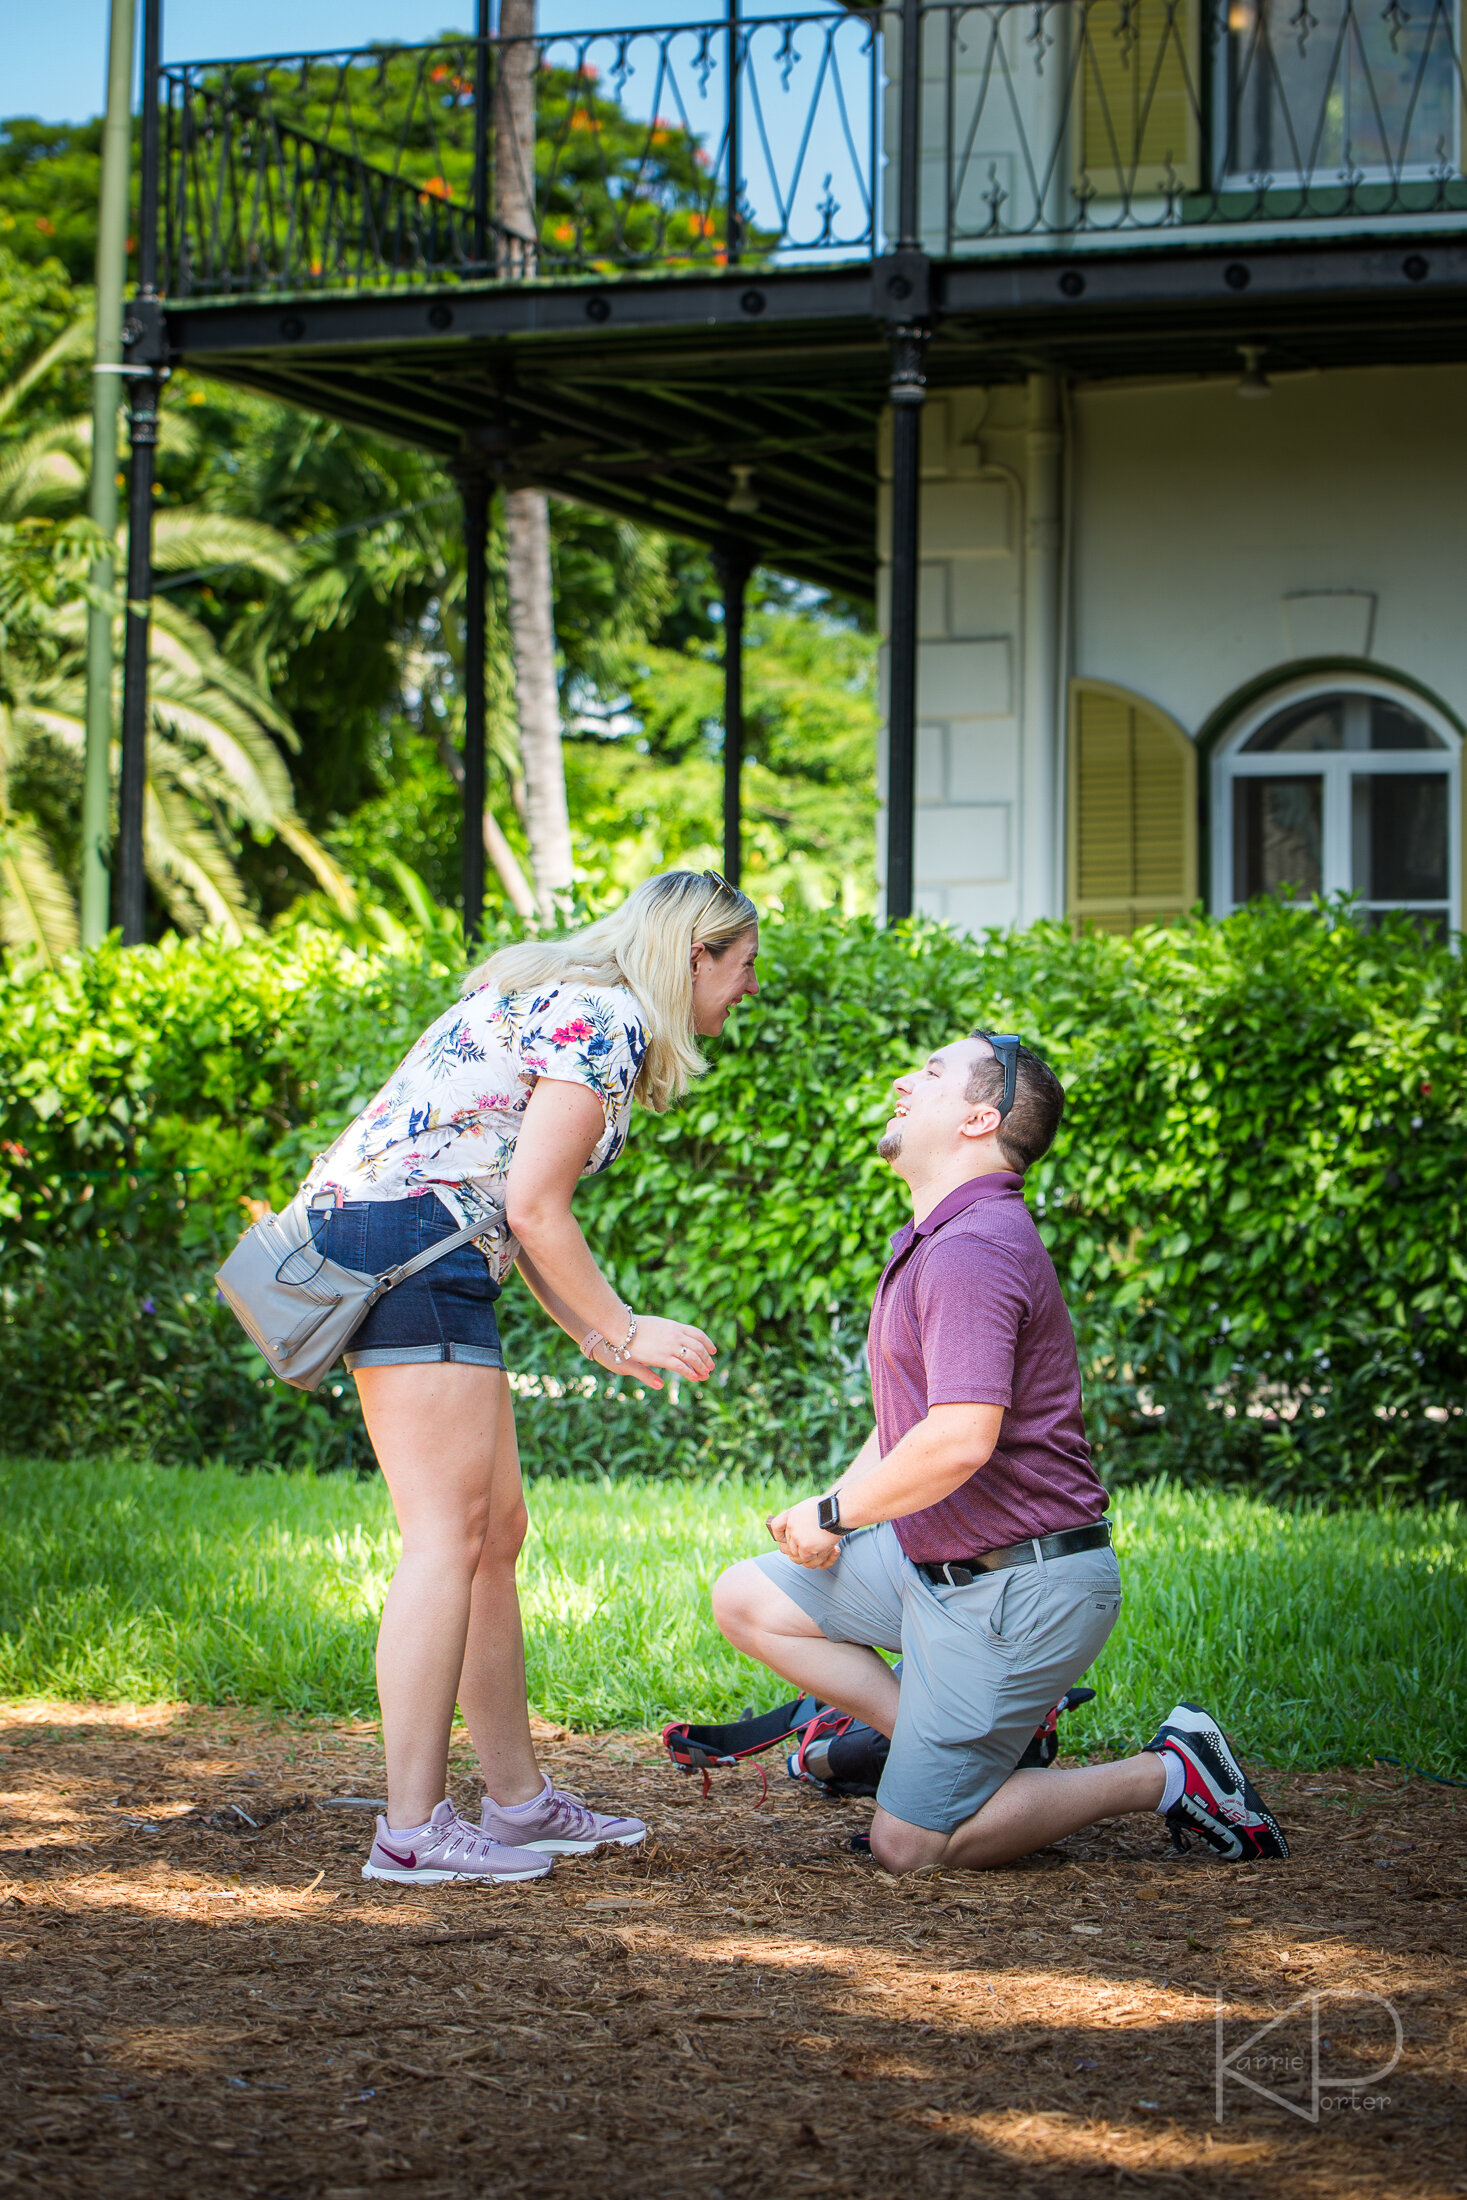 Smiling after being proposed to